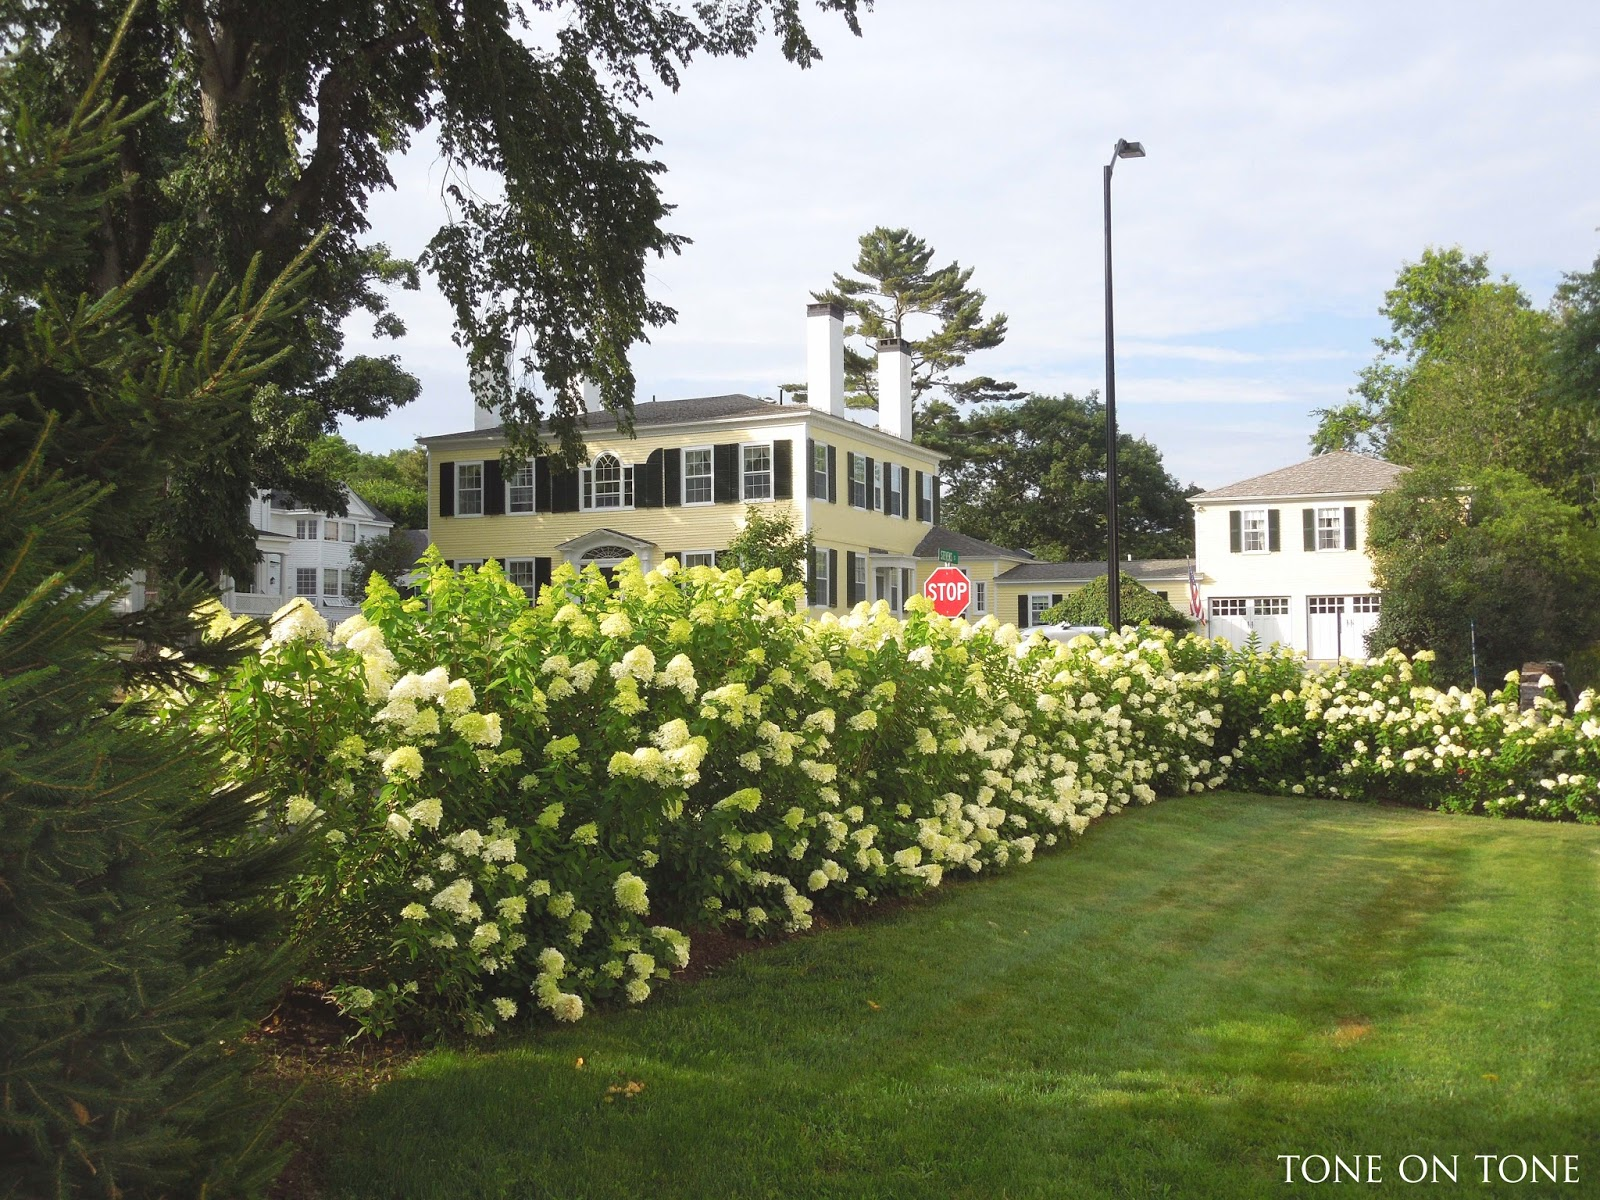 Limelight Hydrangea Hedge Home Design Ideas - From our breakfast and family rooms we look out to this stunning view of stately historic houses ancient elm trees and the limelights